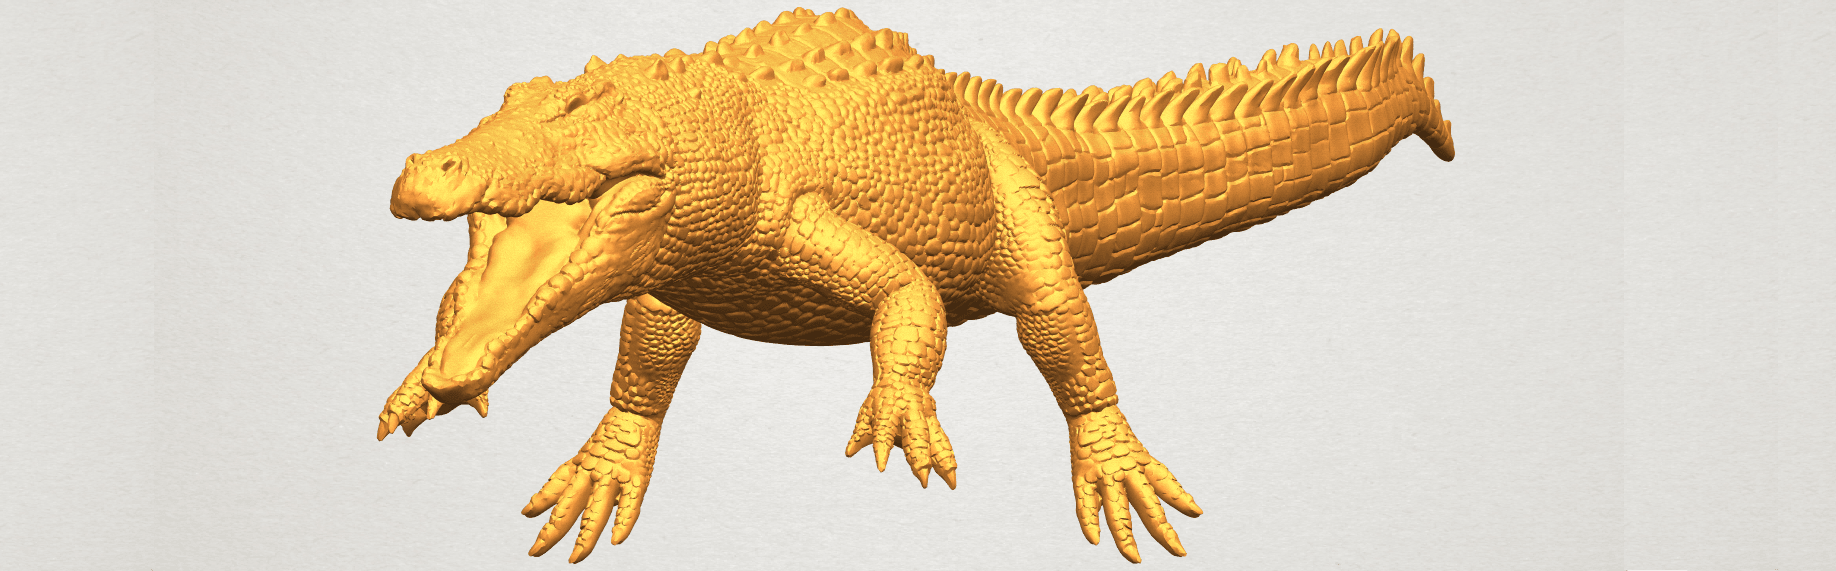 A04 - Copy.png Download free STL file Alligator 01 • 3D printer object, GeorgesNikkei